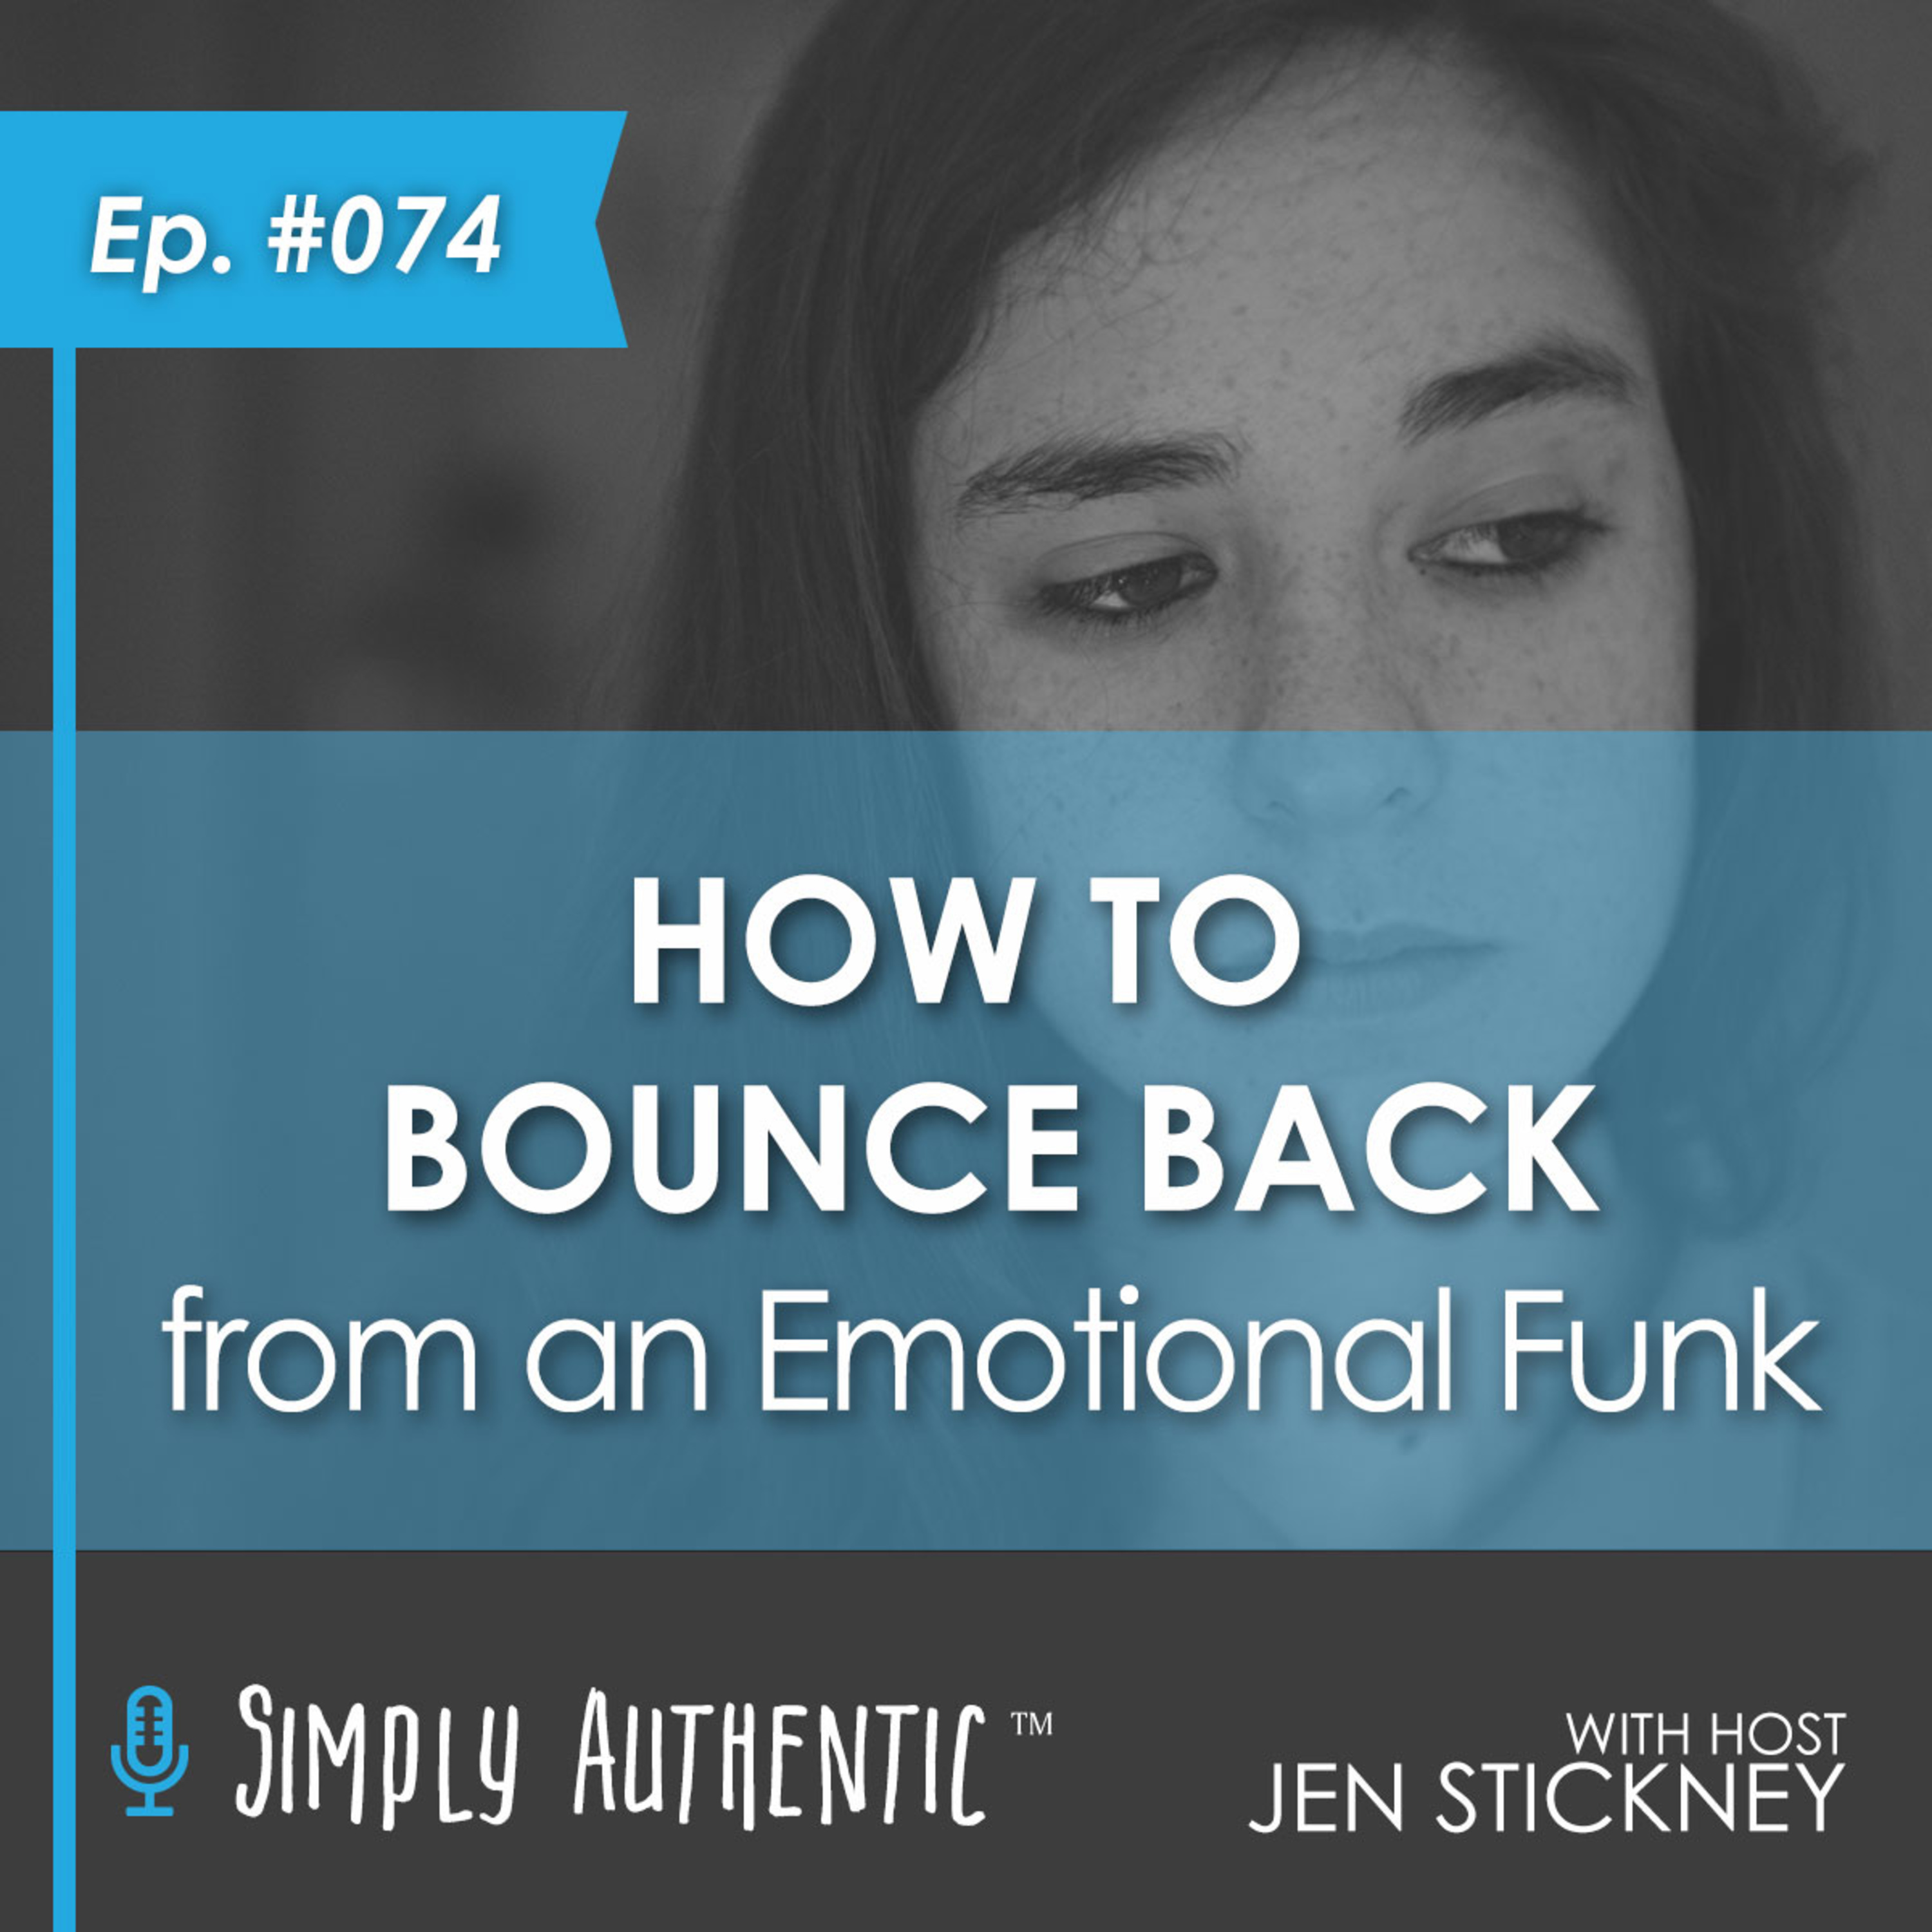 How to Bounce Back from an Emotional Funk